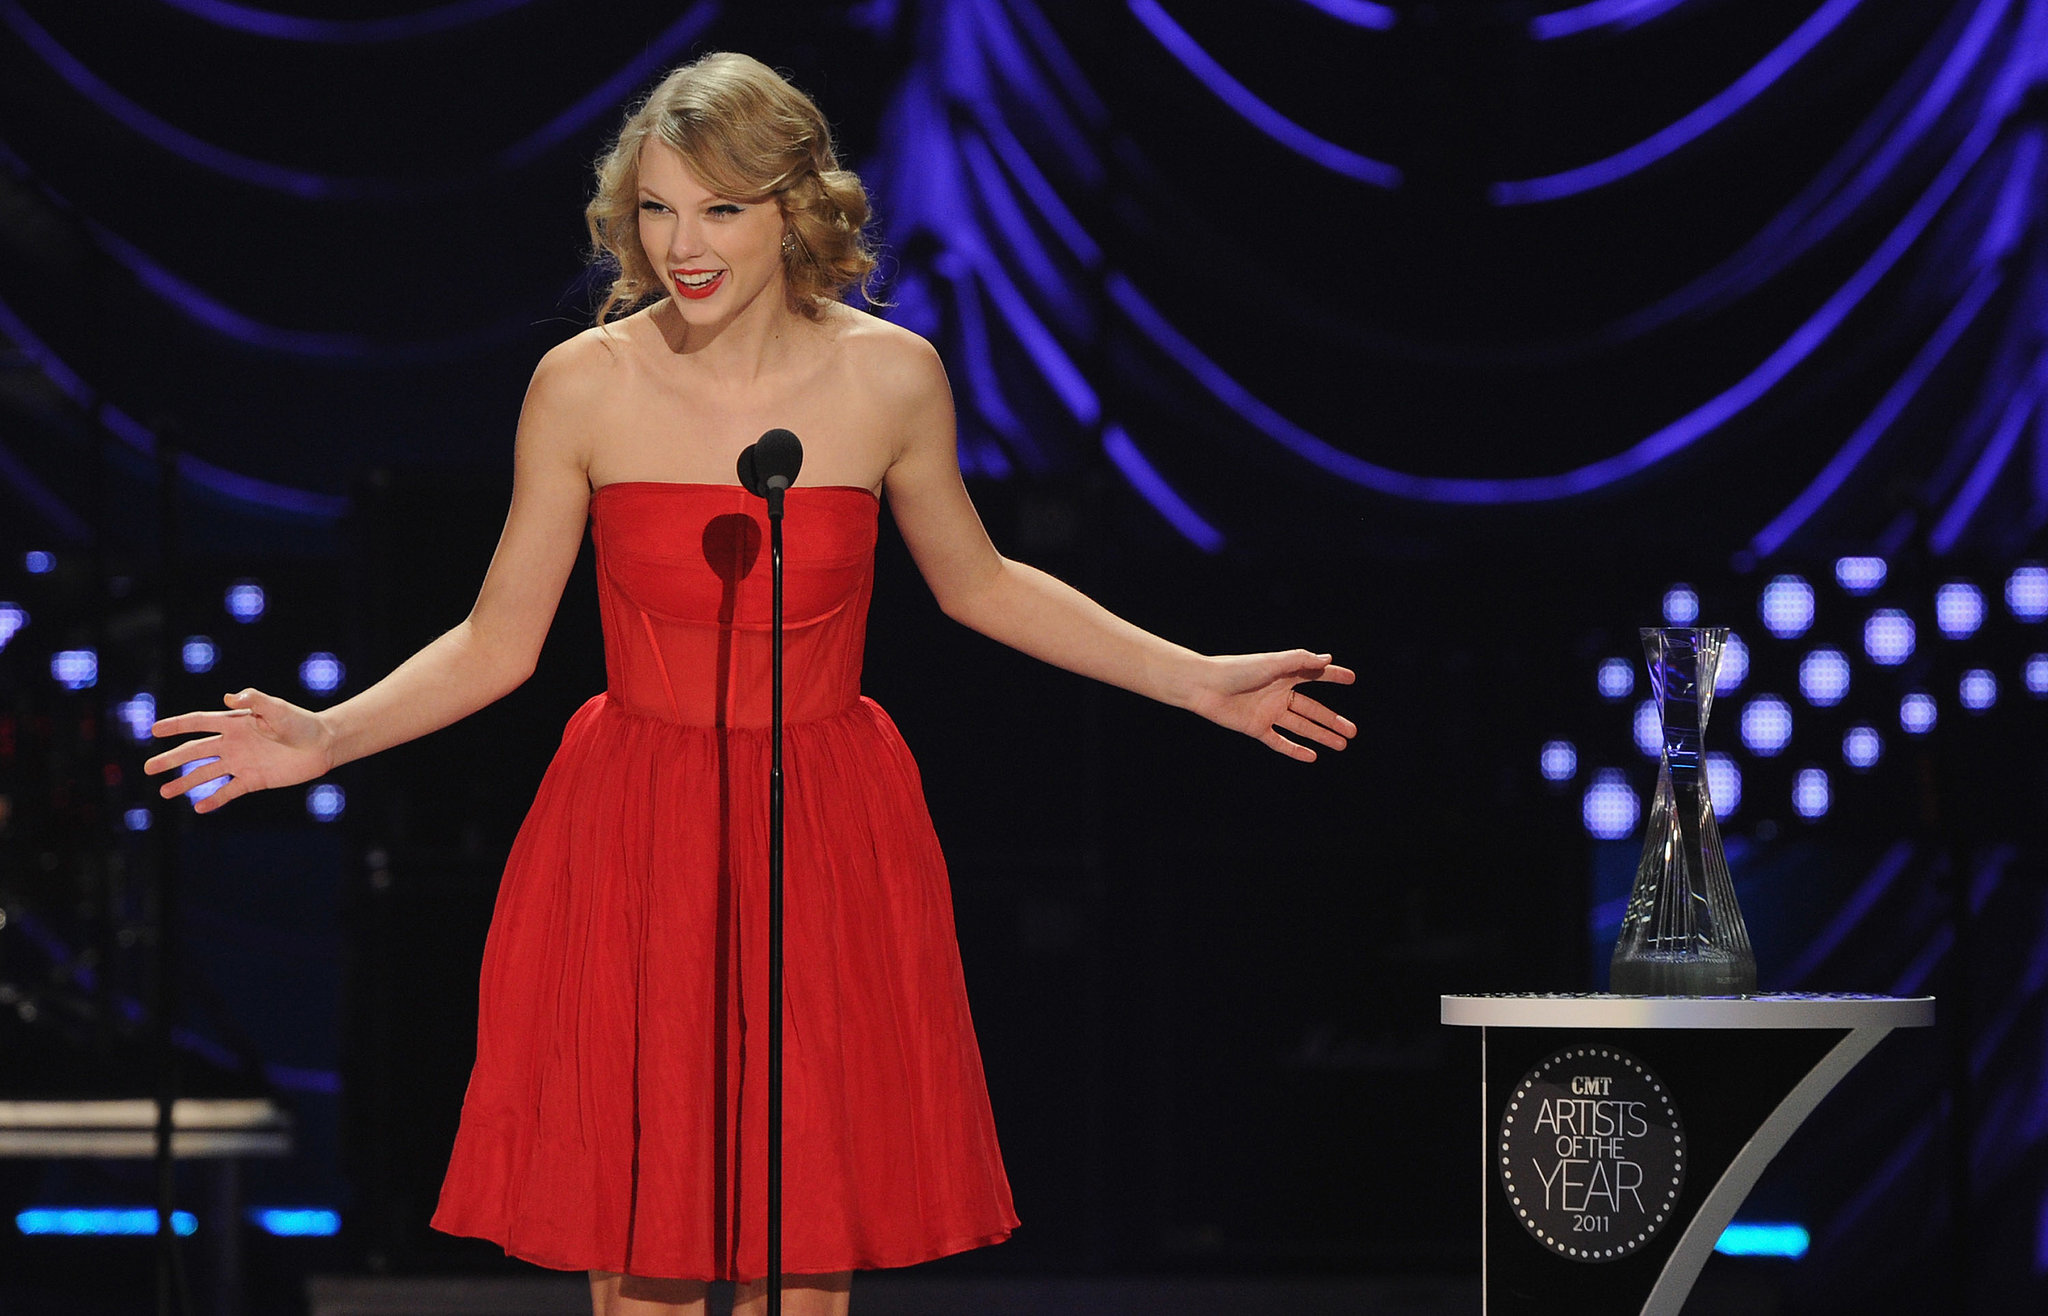 Taylor was honored at the CMT Artists of the Year event in November 2011.